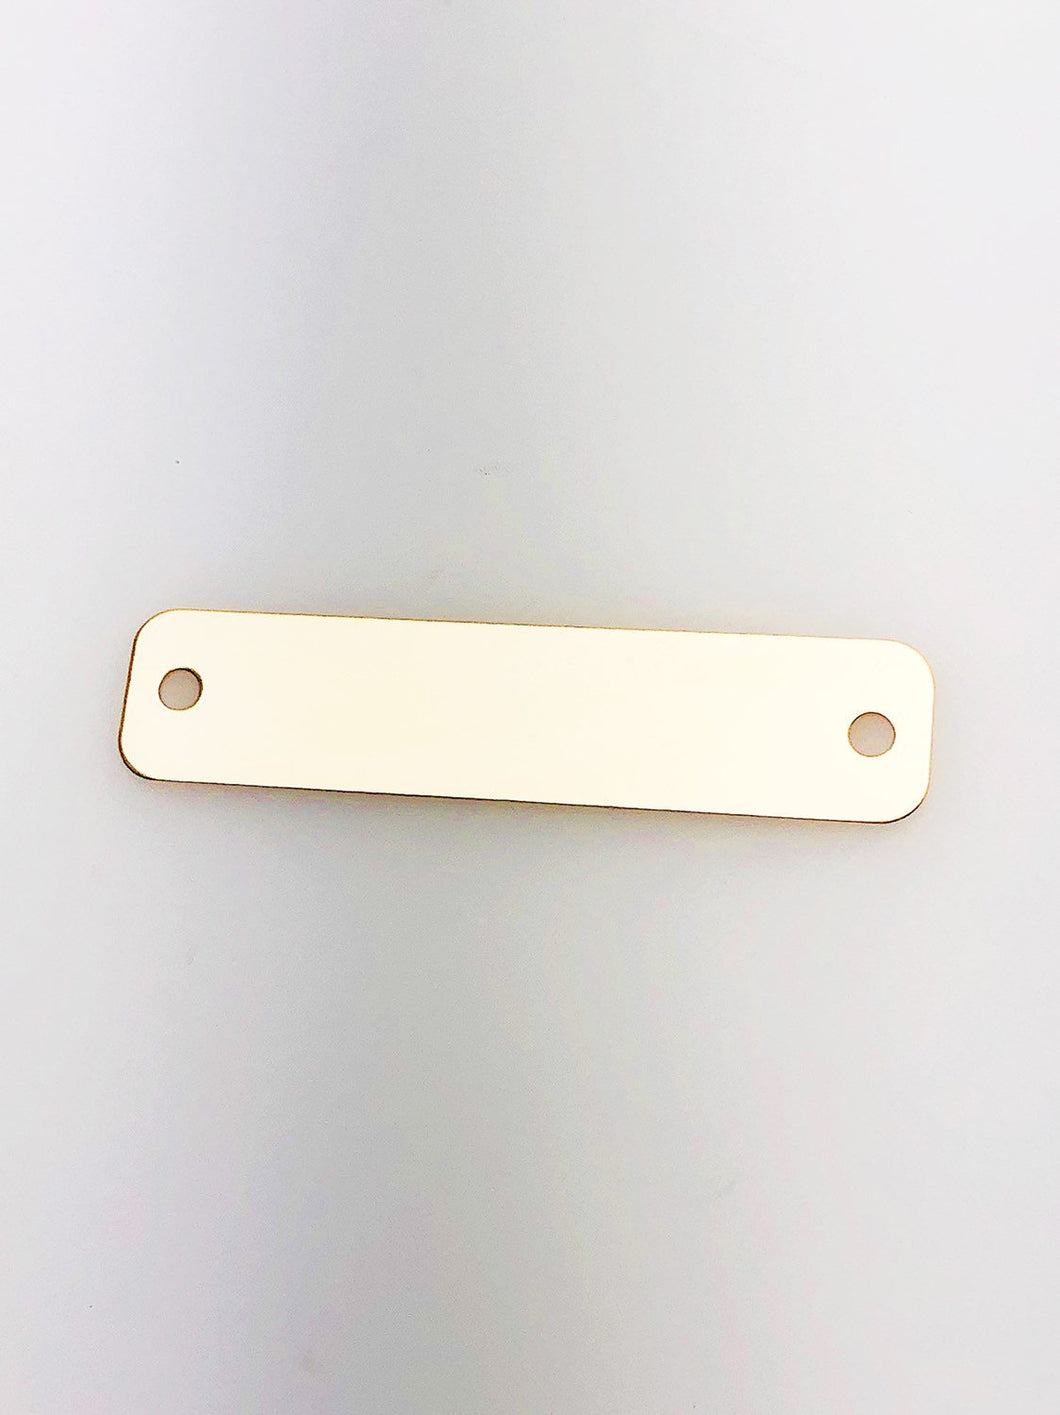 14K Gold Fill Bar Tag Charm w/ Two Holes, 44.0x10.1mm, Made in USA - 2513